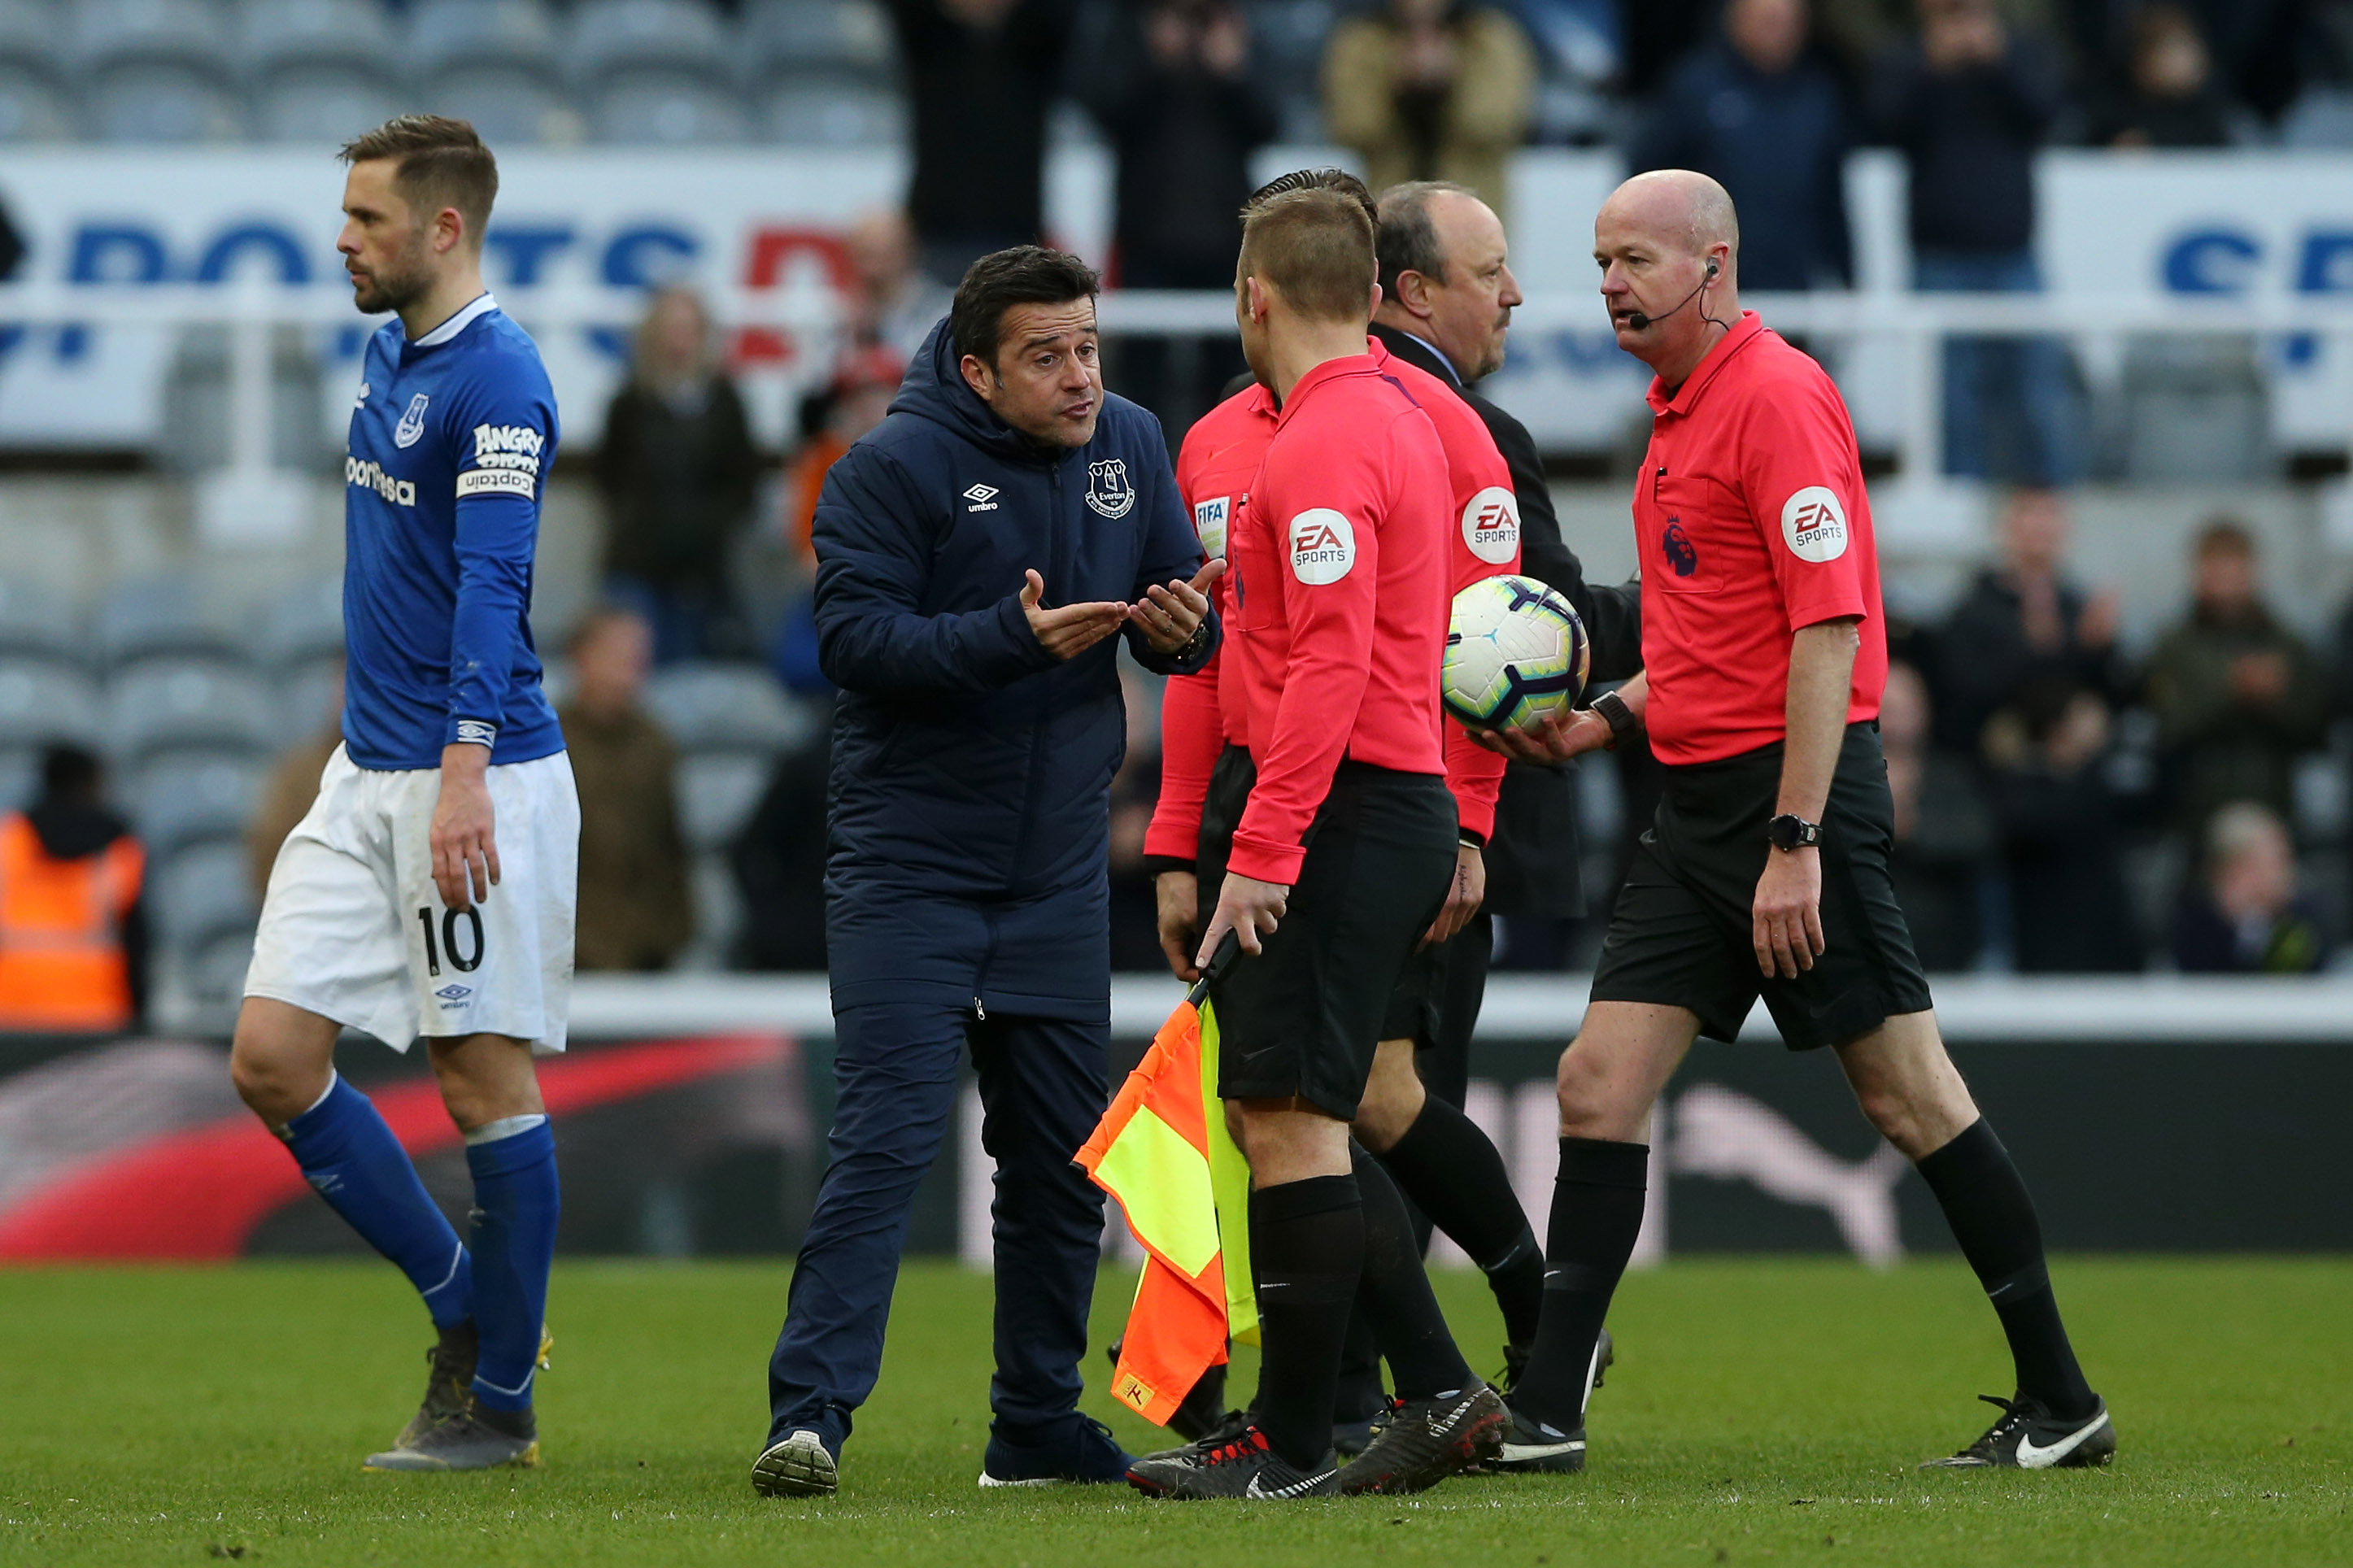 Marco Silva fined but avoids touchline ban over Newcastle outburst